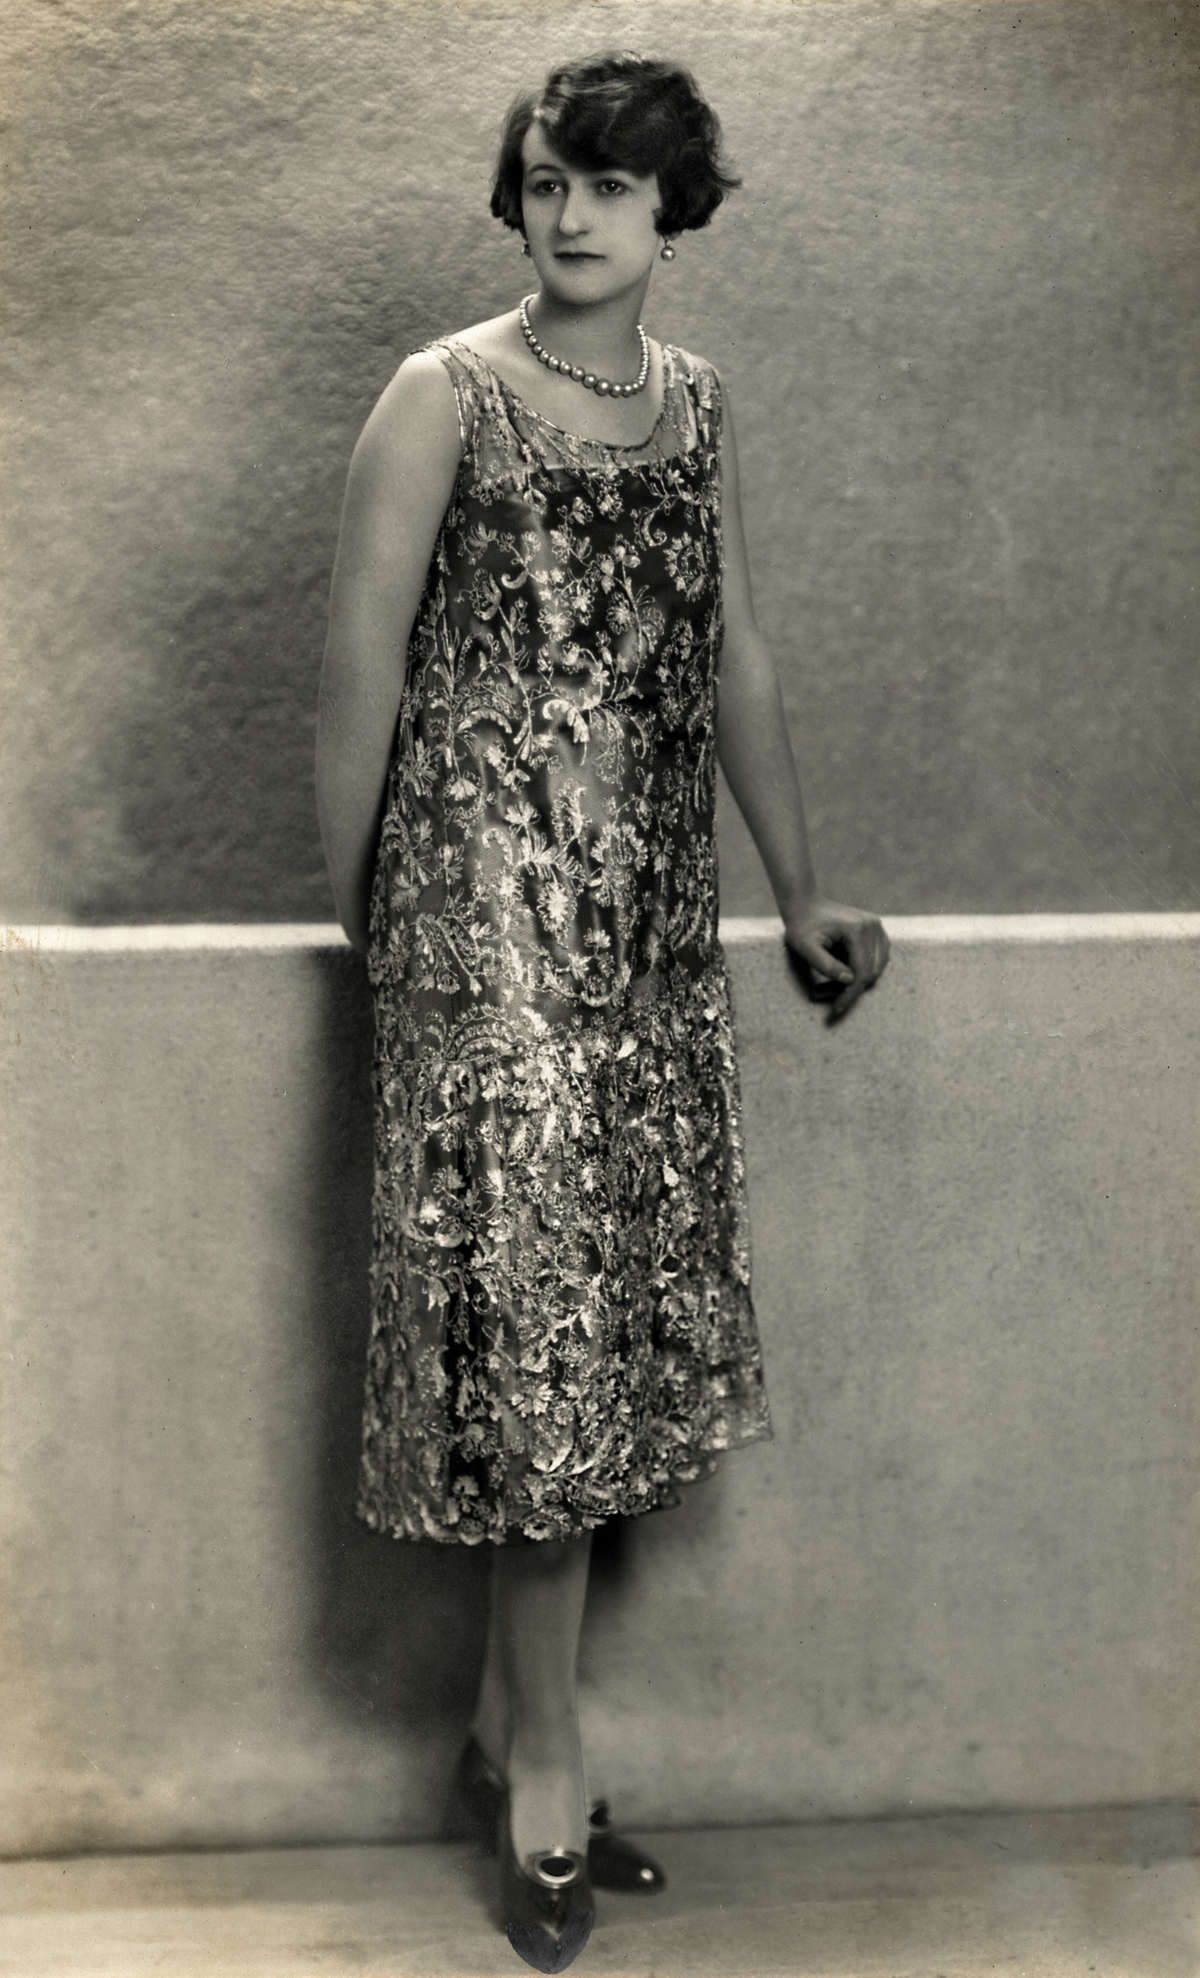 Women's Fashion. Creation from the spring fashion 1925: a sleeveless gown with rich lace on a slippery surface. [Paris, France], 1925.